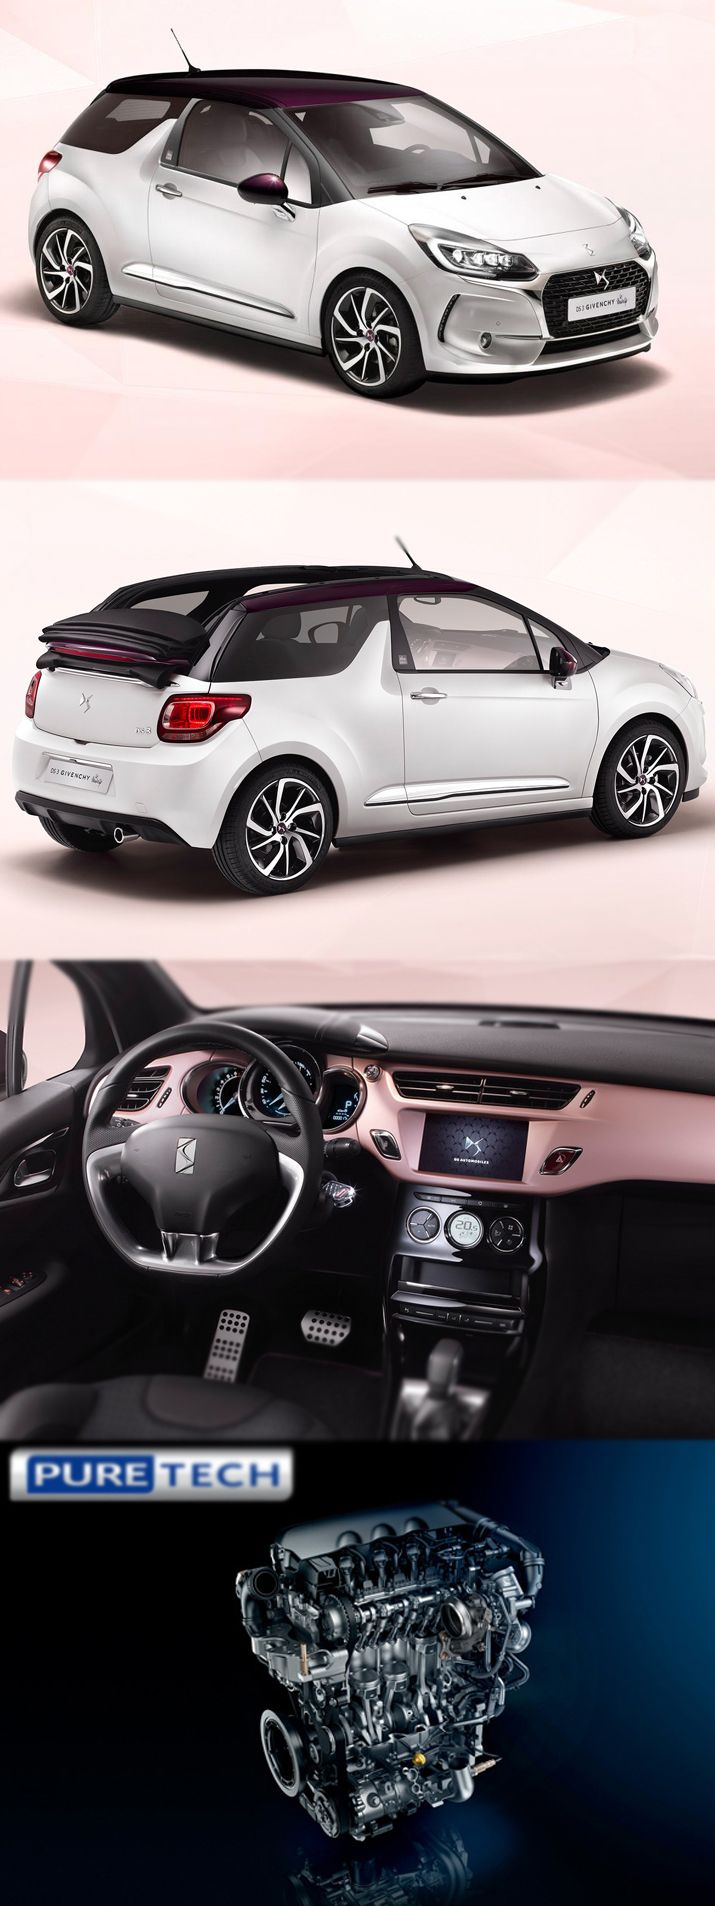 Citroen DS3 gets Givenchy Treatment For more details;http://www.engineprices.co.uk/blog/citroen-ds3-gets-givenchy-treatment/